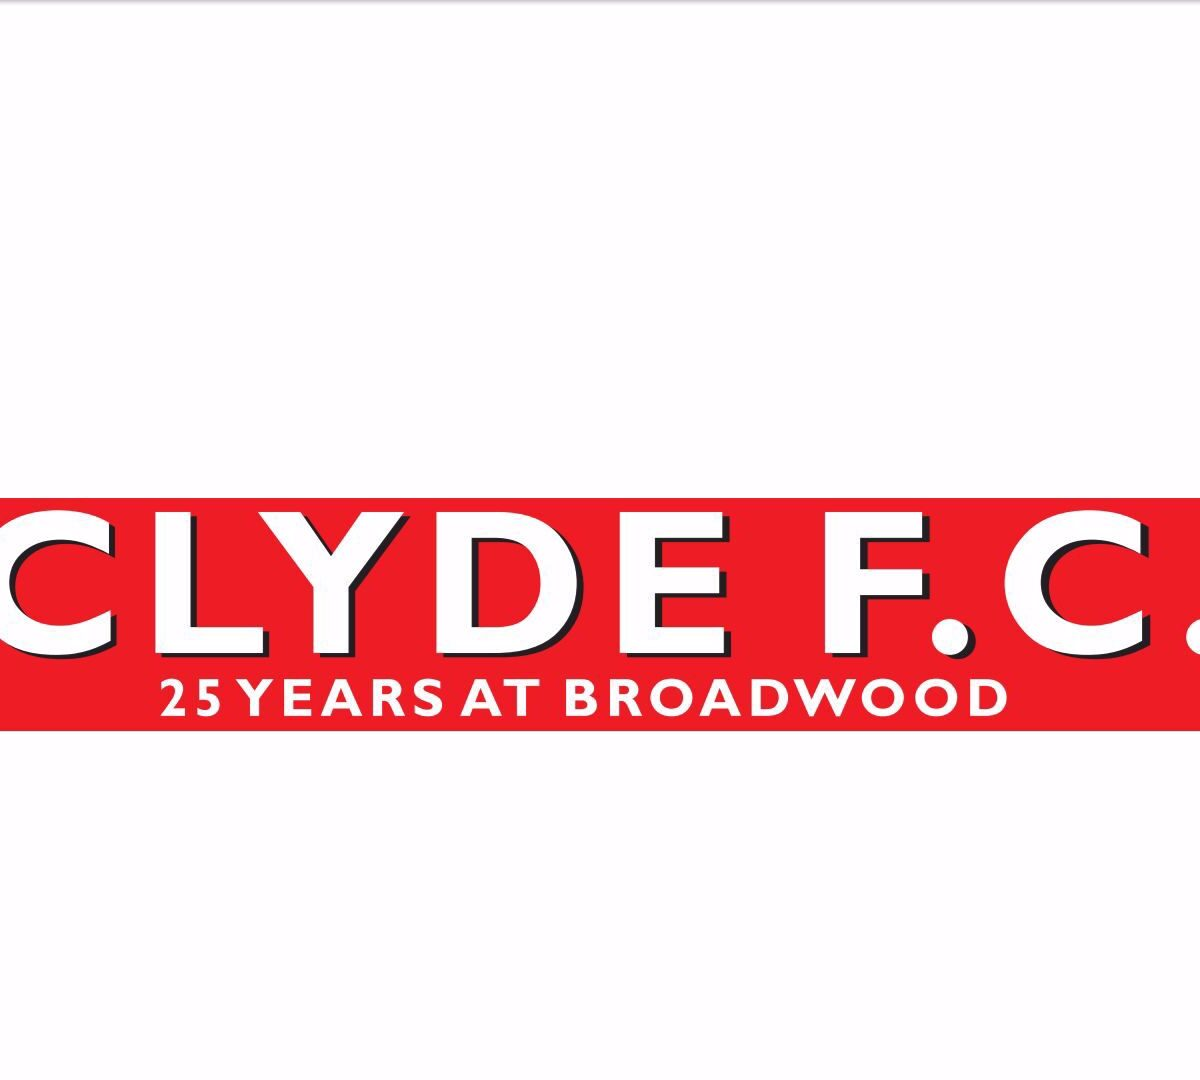 Clyde FC Scarf -25 Years